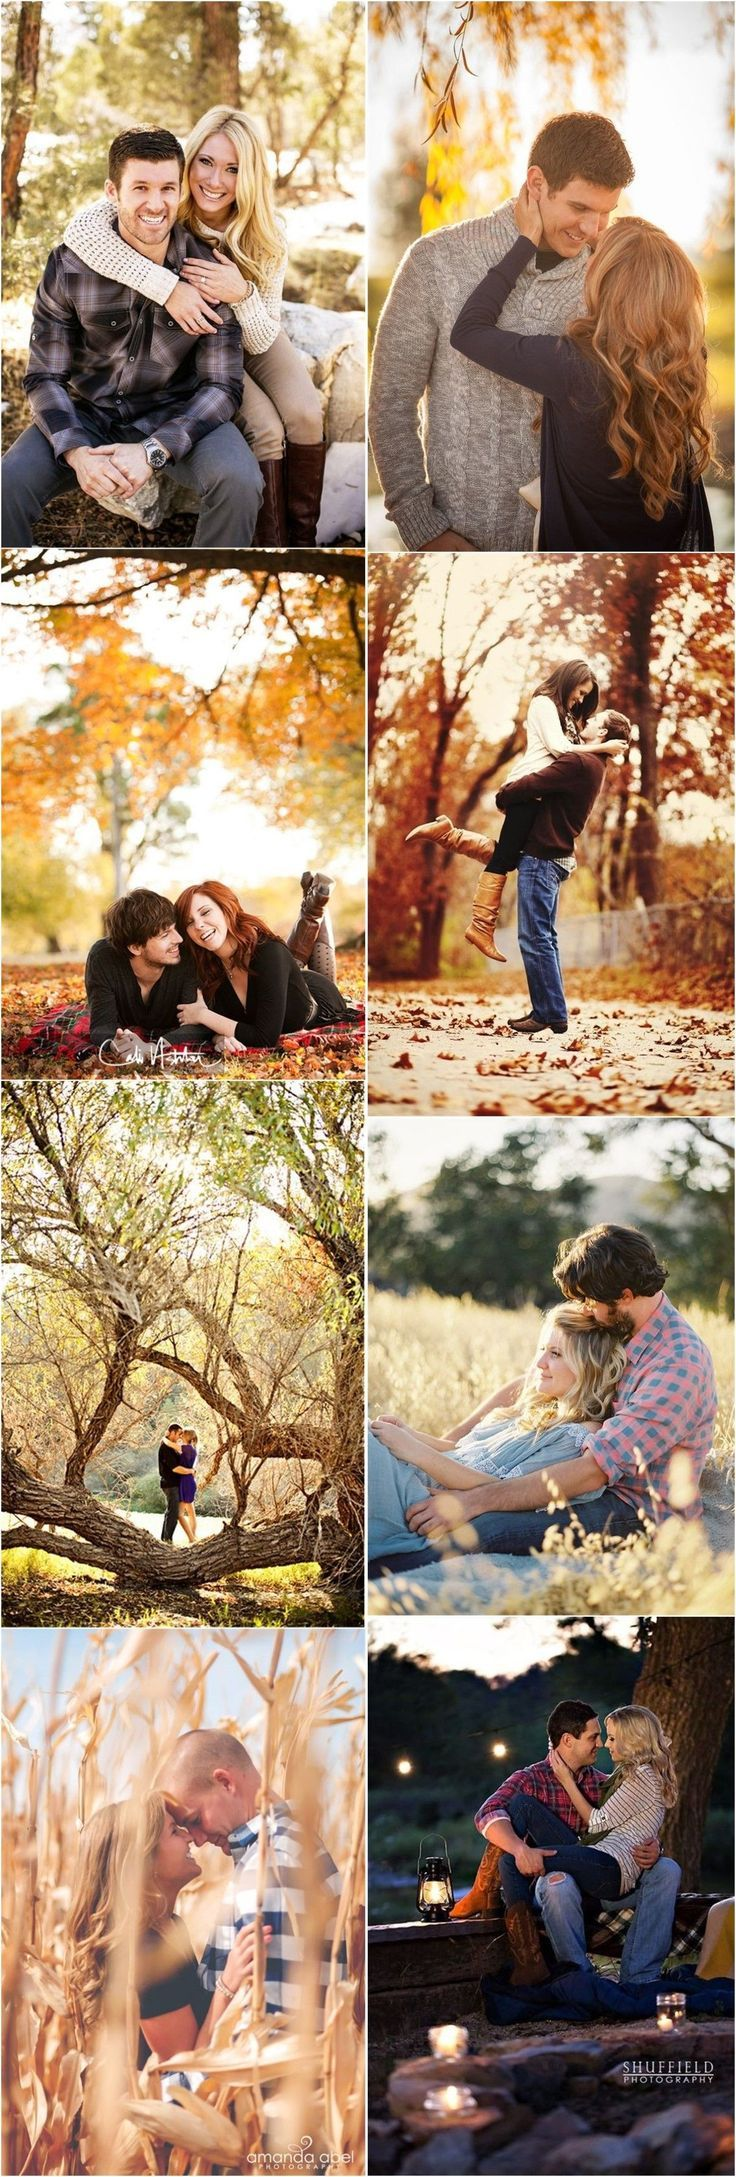 23 Artistic Fall Engagement Picture Shoots Concepts I Ought to've Had Myself!